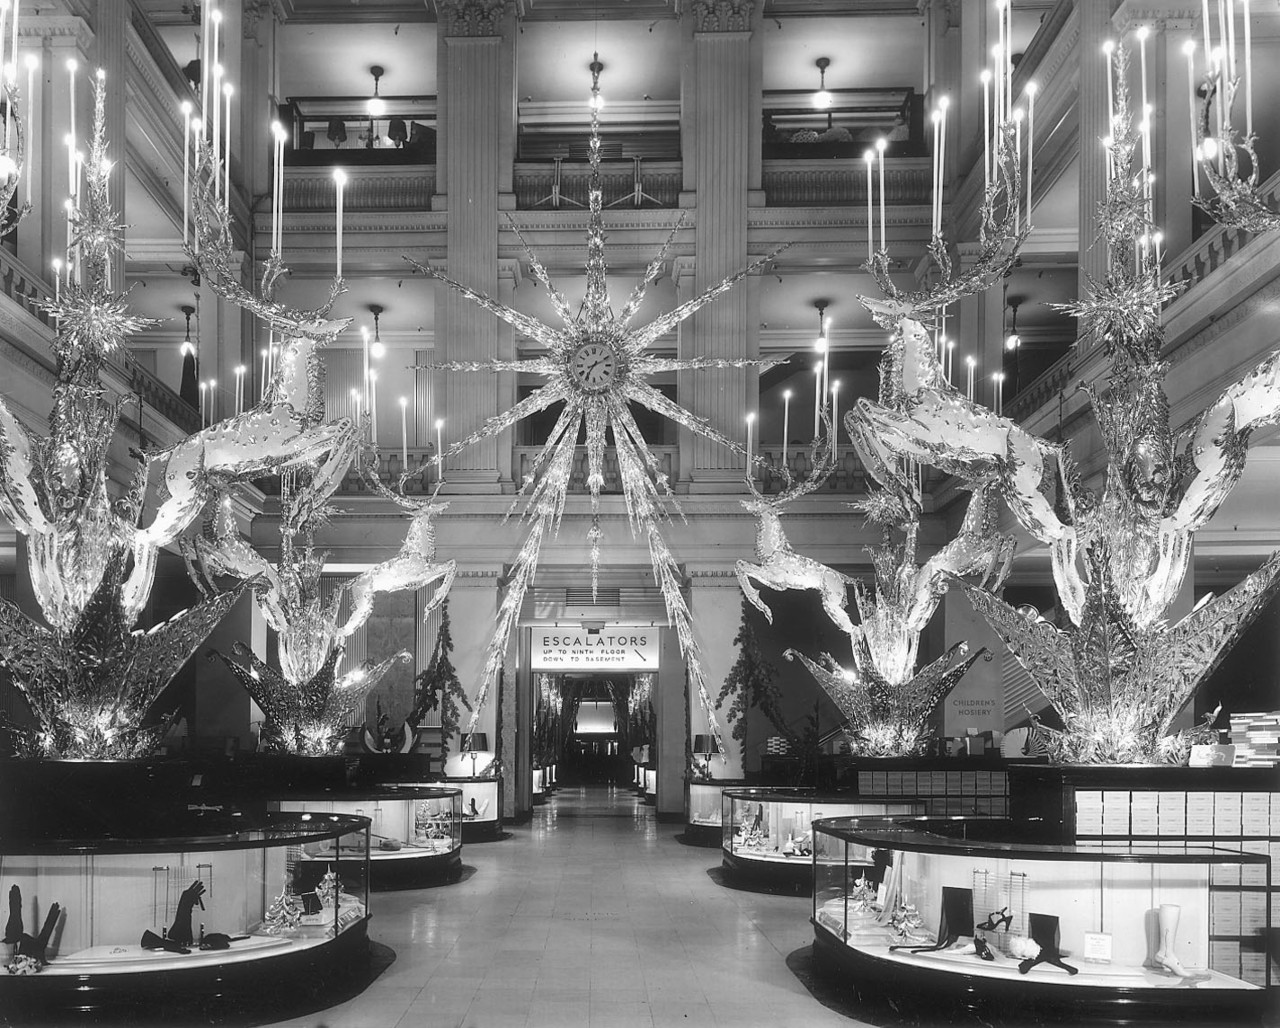 Marshall field 39 s historic christmas decorations wendycity for Xmas decoration stores